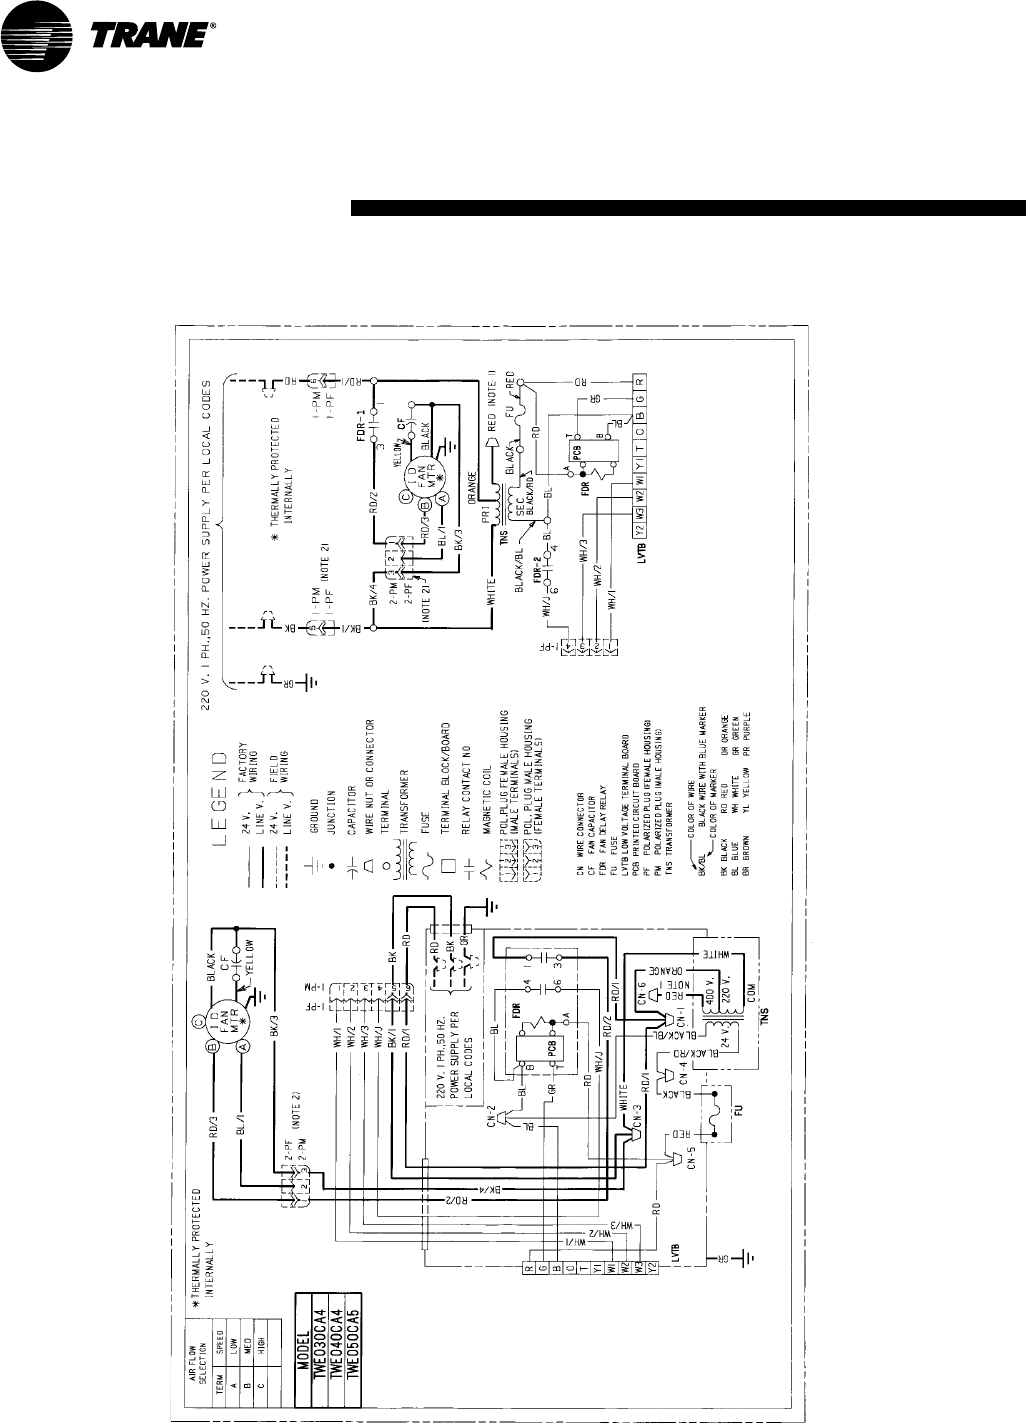 Page 24 of Trane Welding System TWE030c User Guide